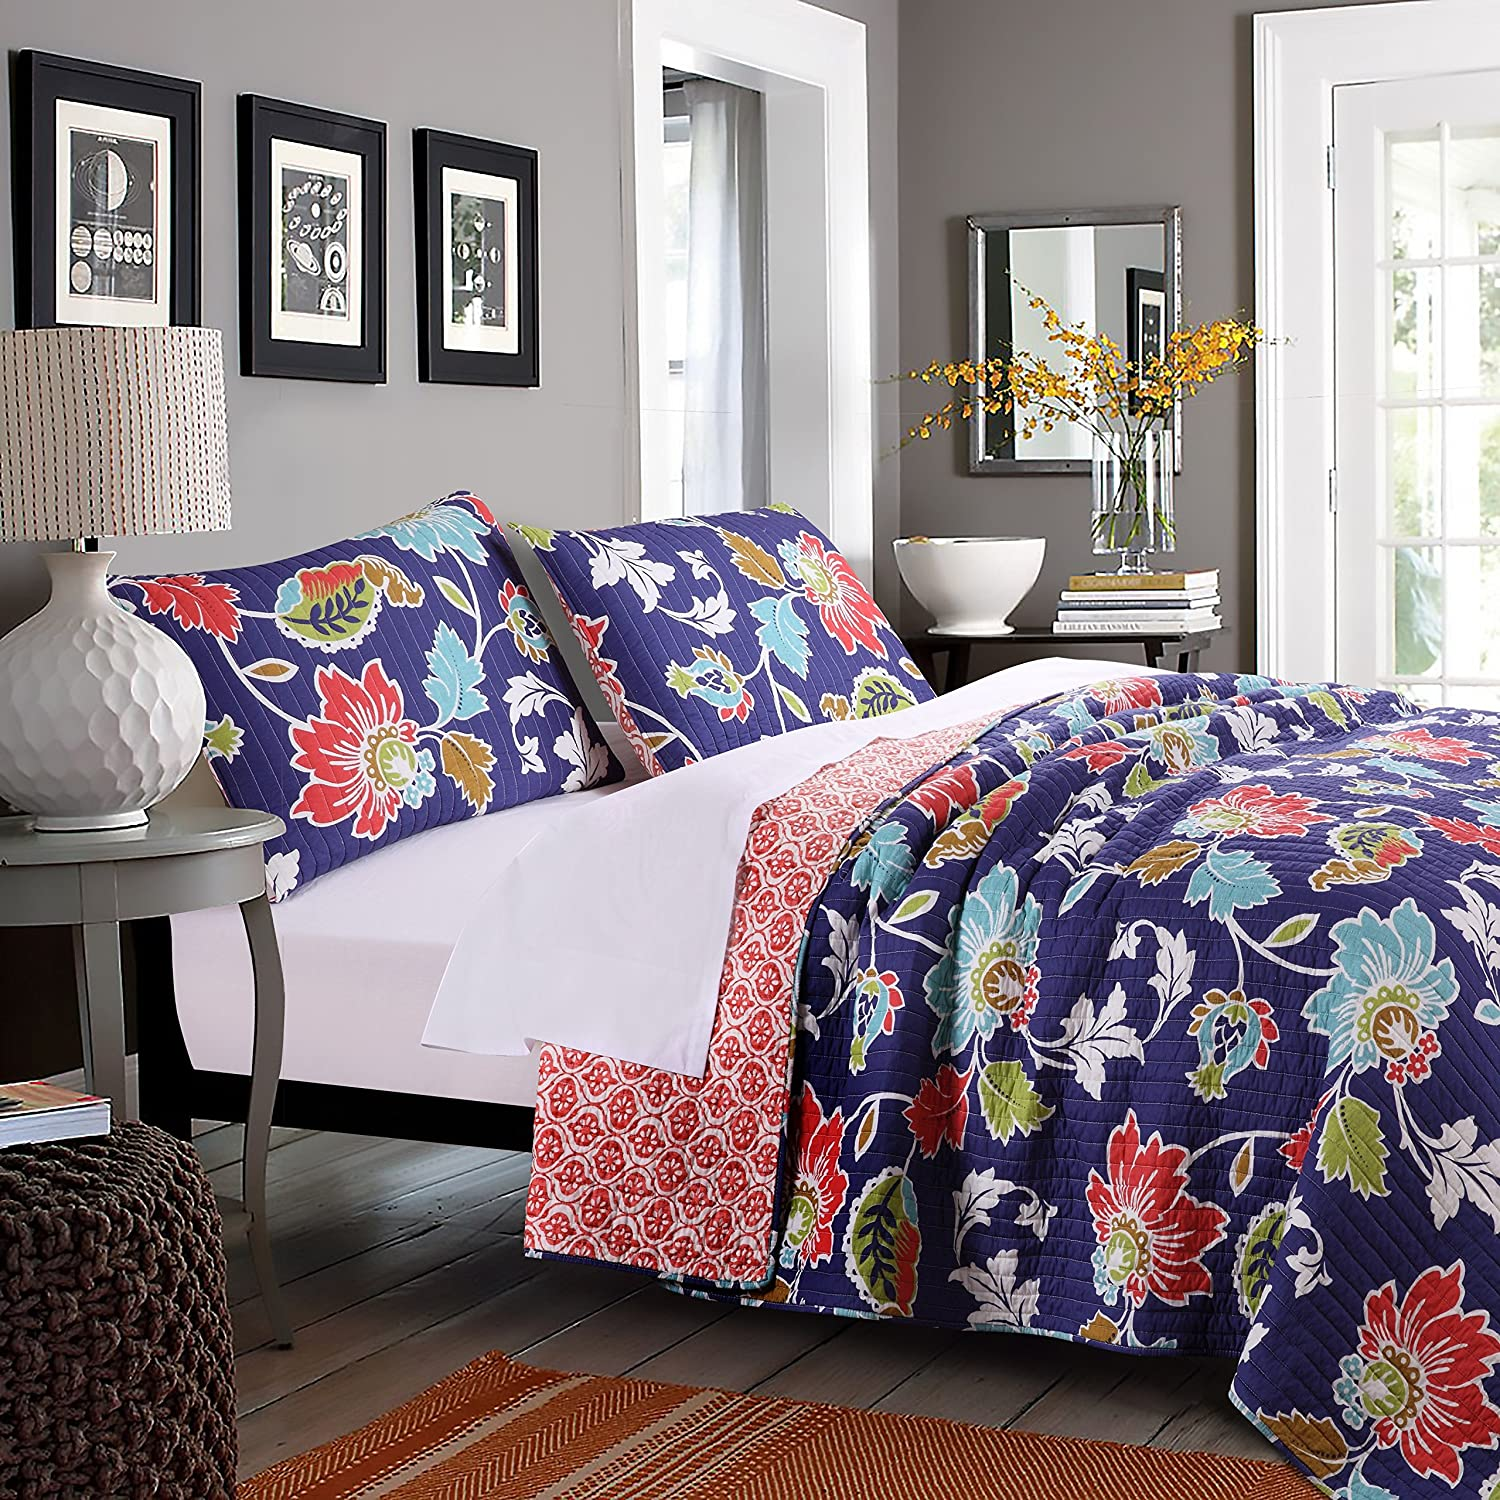 Greenland Home 3 Piece Phoebe Midnight Quilt Set, King, Blue